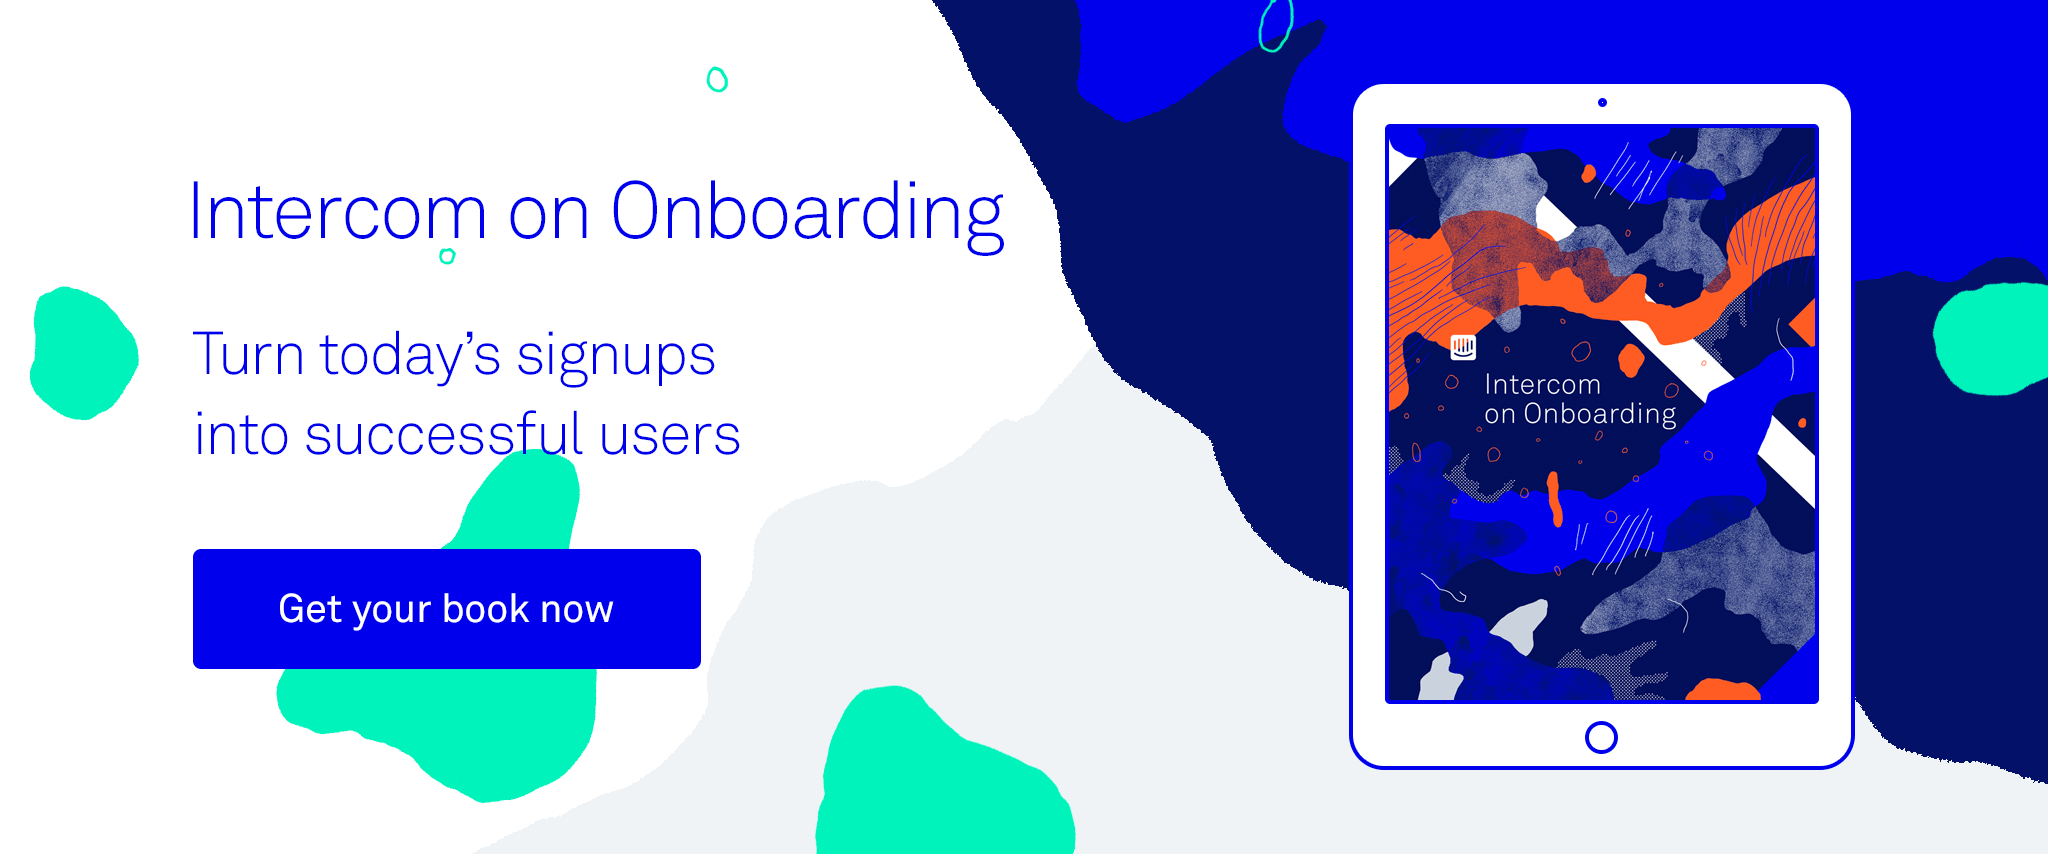 Intercom on Onboarding